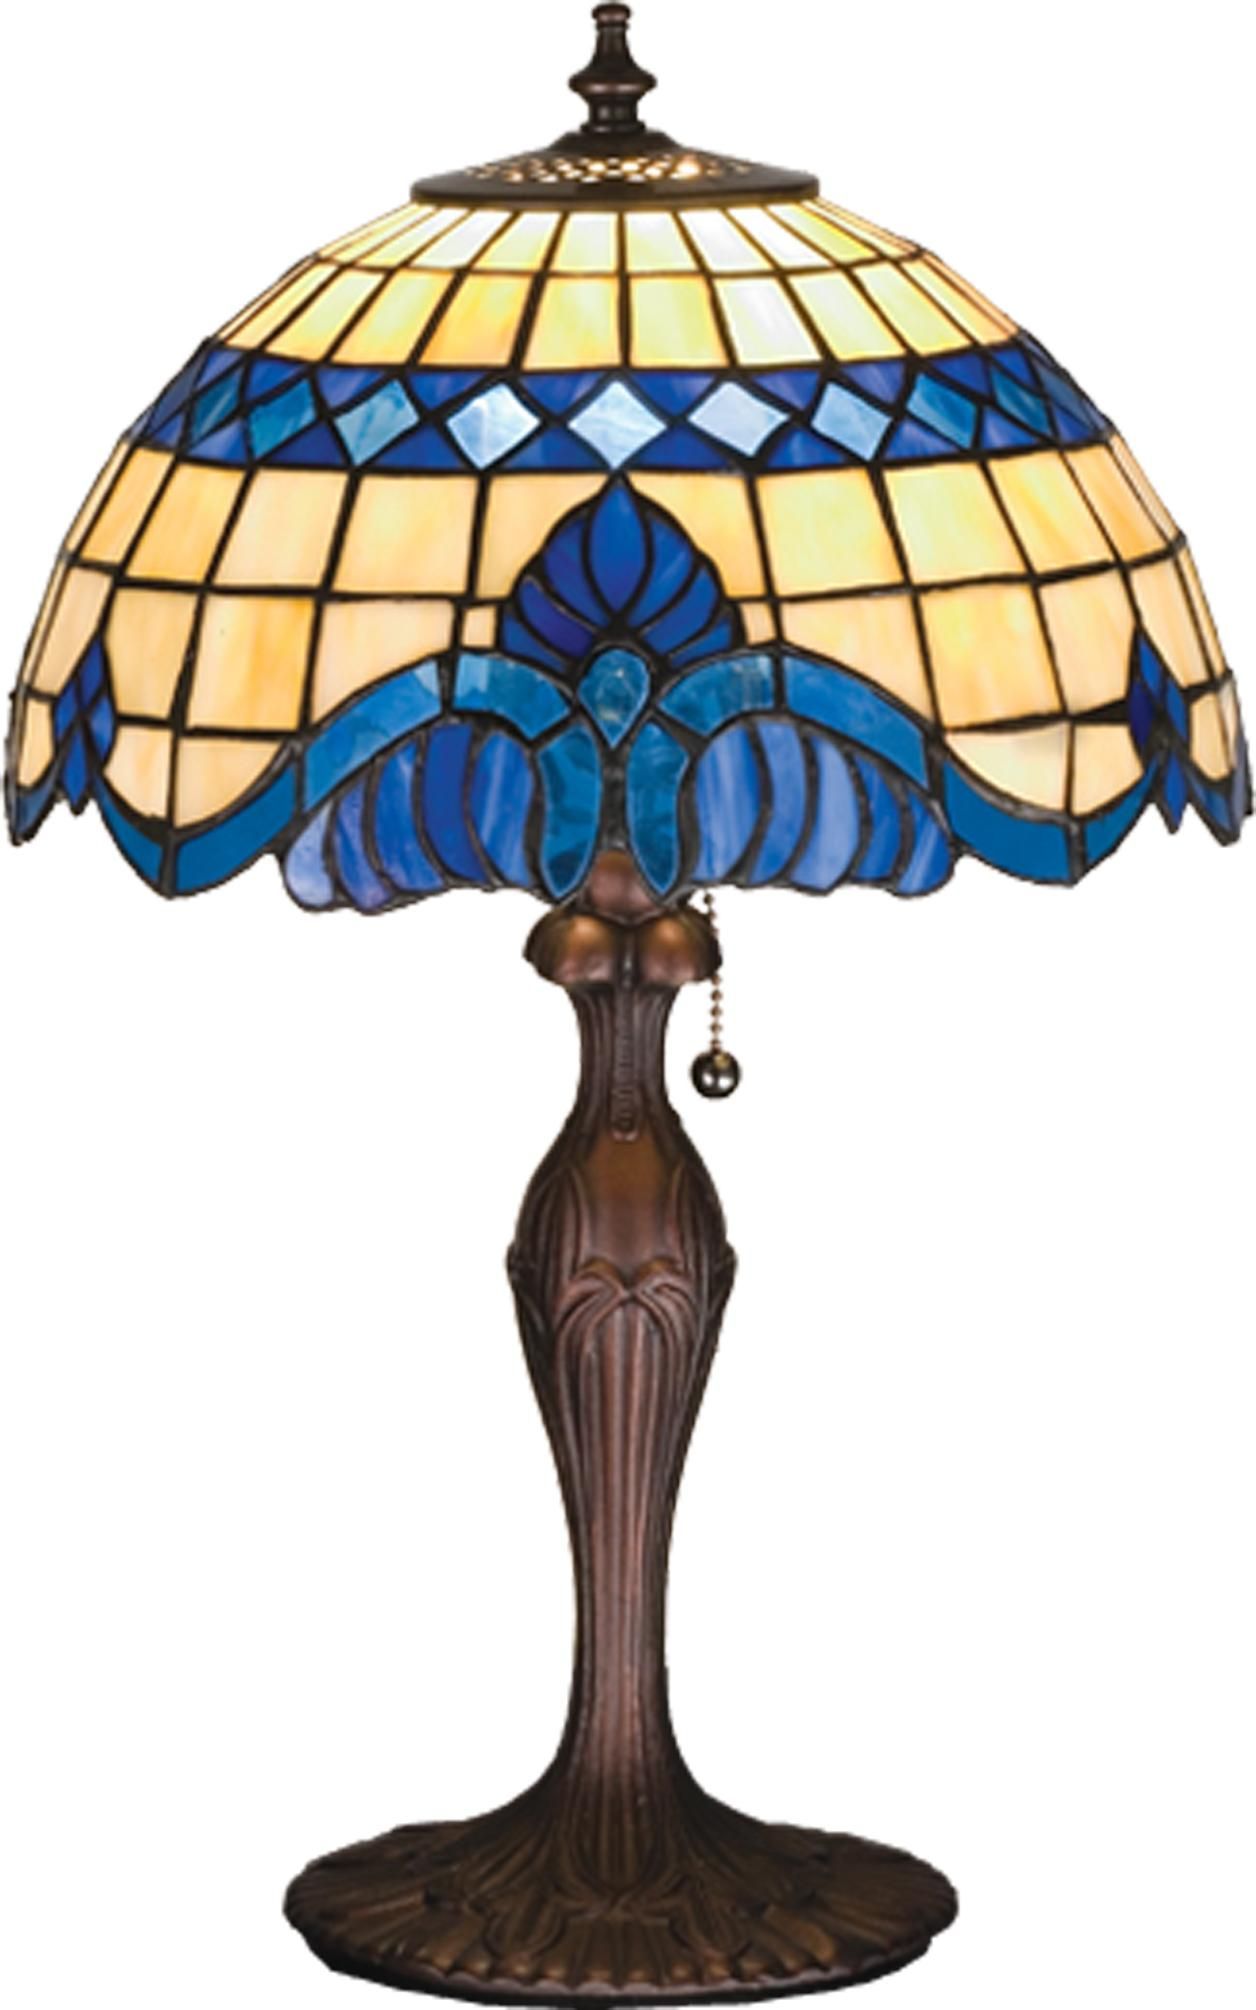 baroque accent lamp meyda tiffany home decor table lamps love entry room magnussen side corner ikea high top furniture for tiny spaces black dining chairs modern blue small